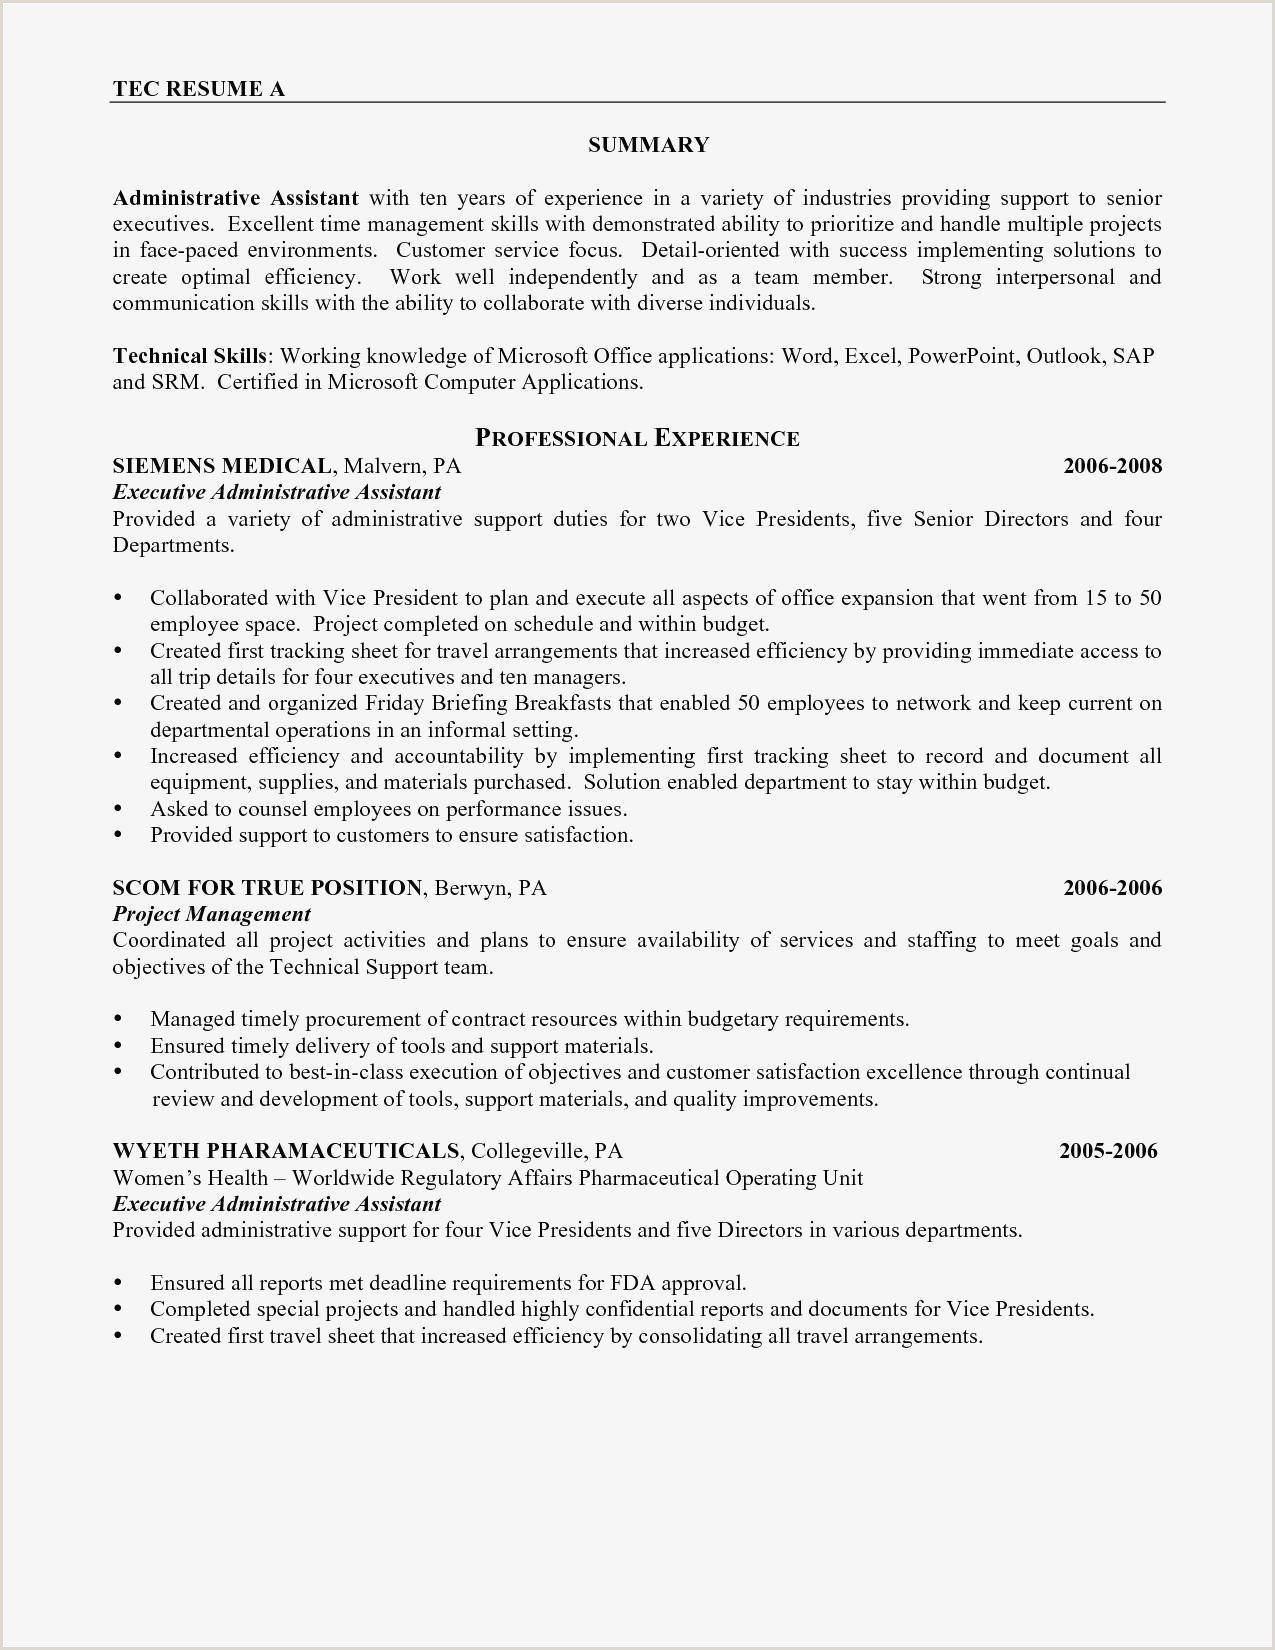 Sample Cv for Job Application Pdf New Resume formats New Best Resume Samples New Resume